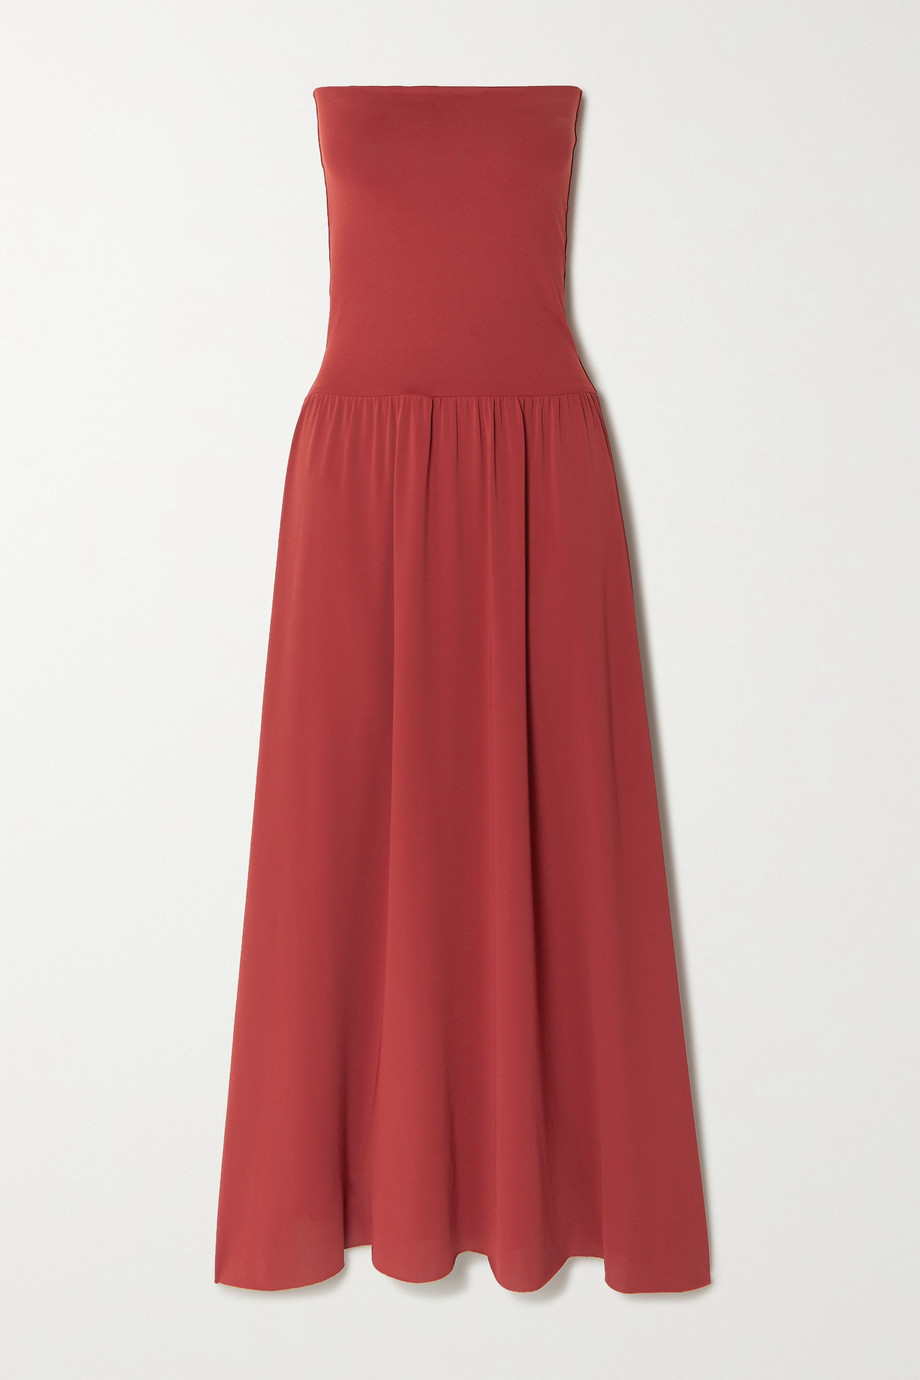 Eres Oda strapless stretch-jersey maxi dress